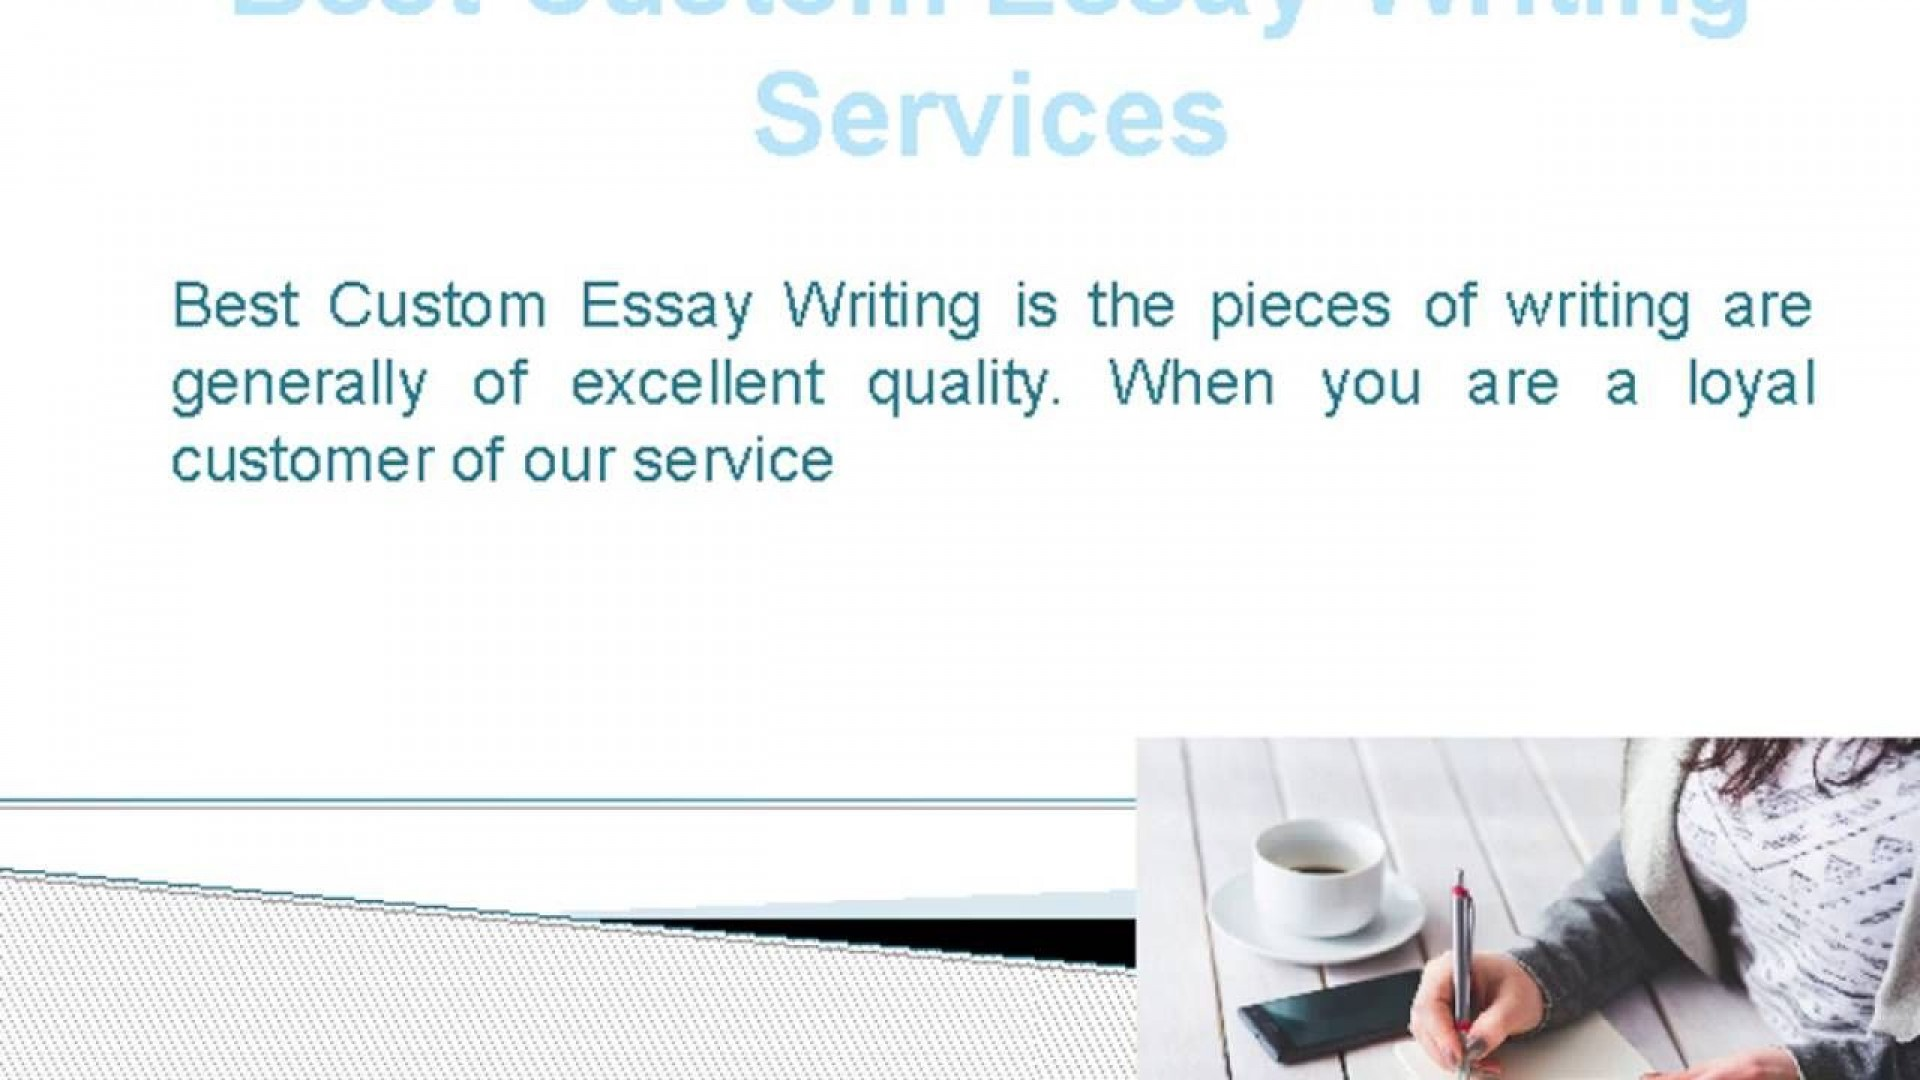 017 Essay Writer Free Example Amazing Trial Unblocked Software 1920